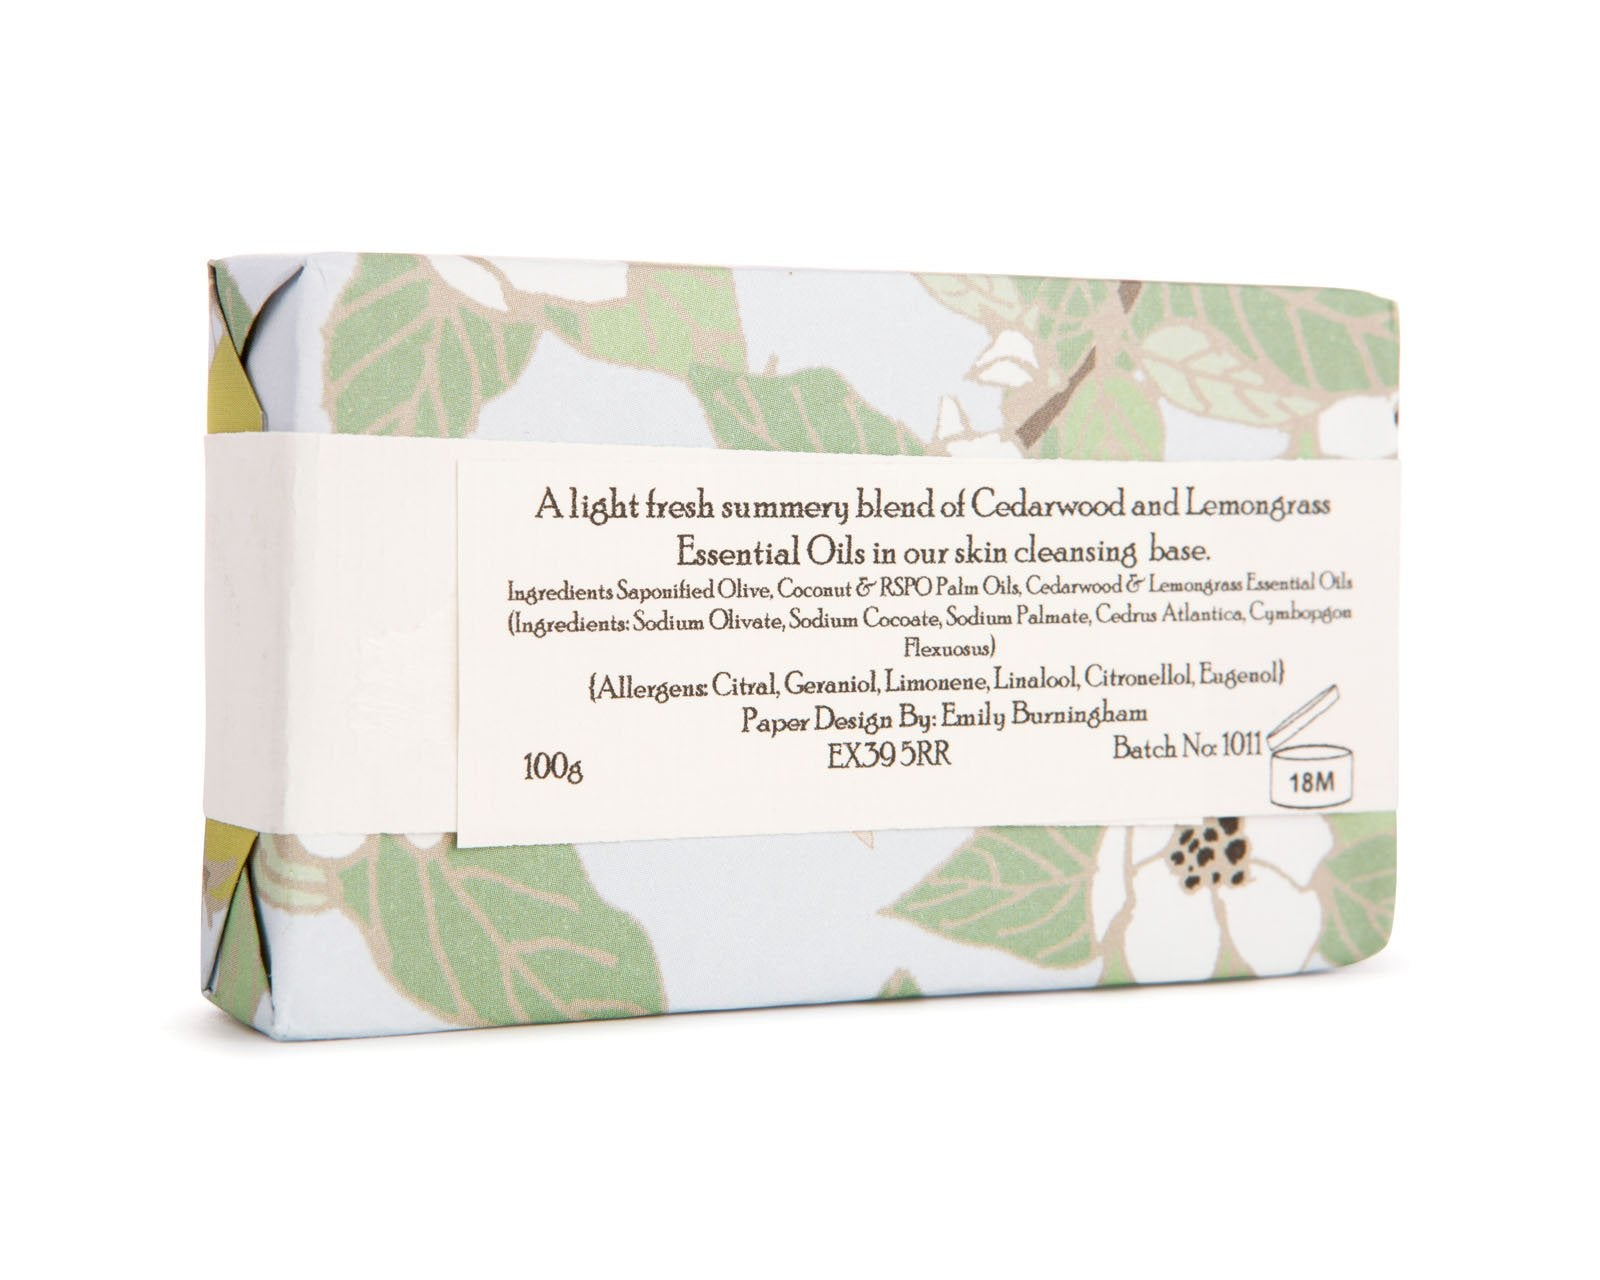 Handmade Cedarwood & Lemongrass Natural Soap Bar 100g